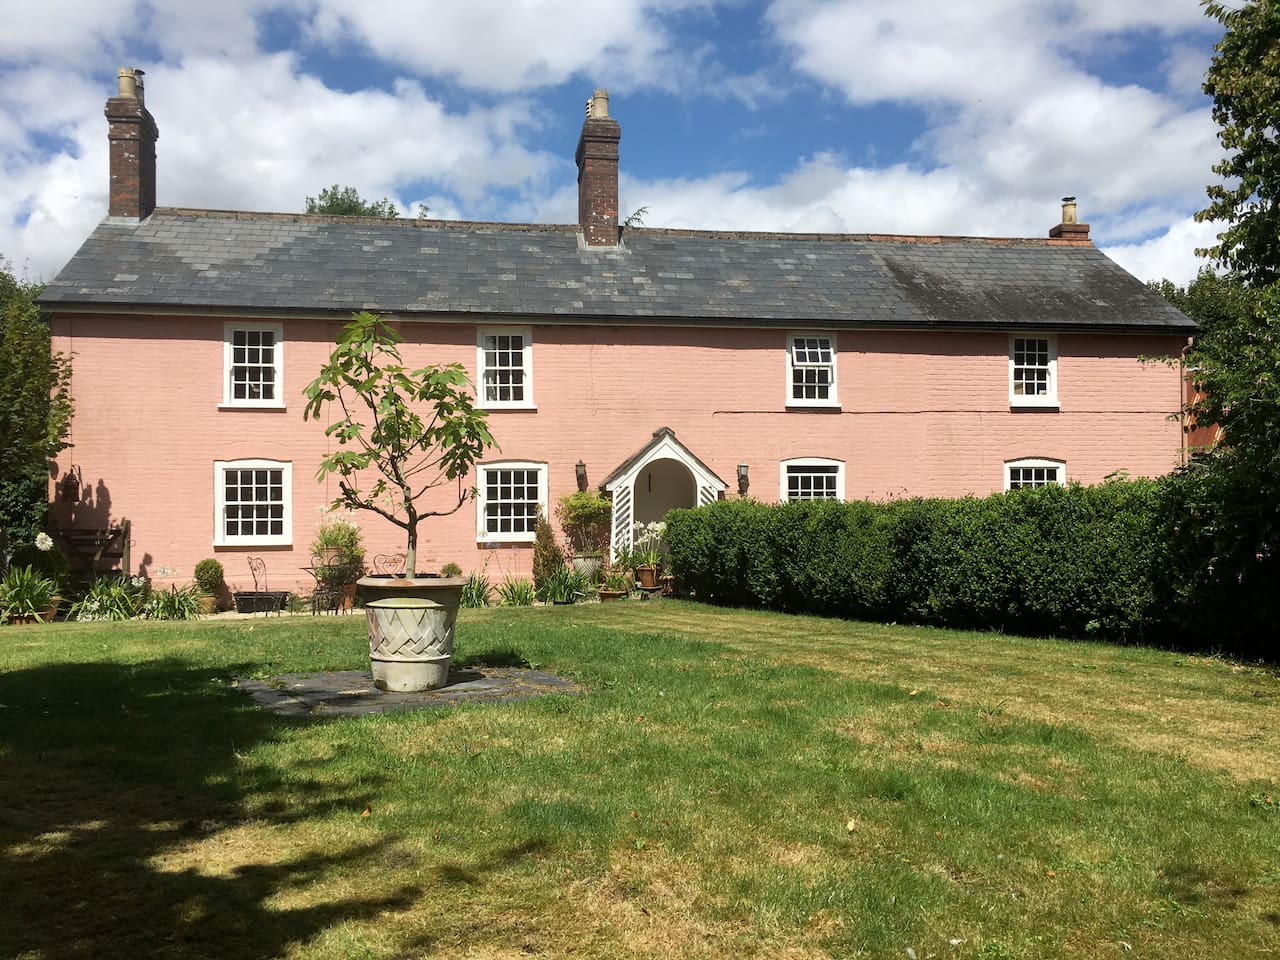 Beautifully restored Georgian farmhouse with cosy fireplaces and spacious rooms to relax in. Large landscaped garden and open barn for summer